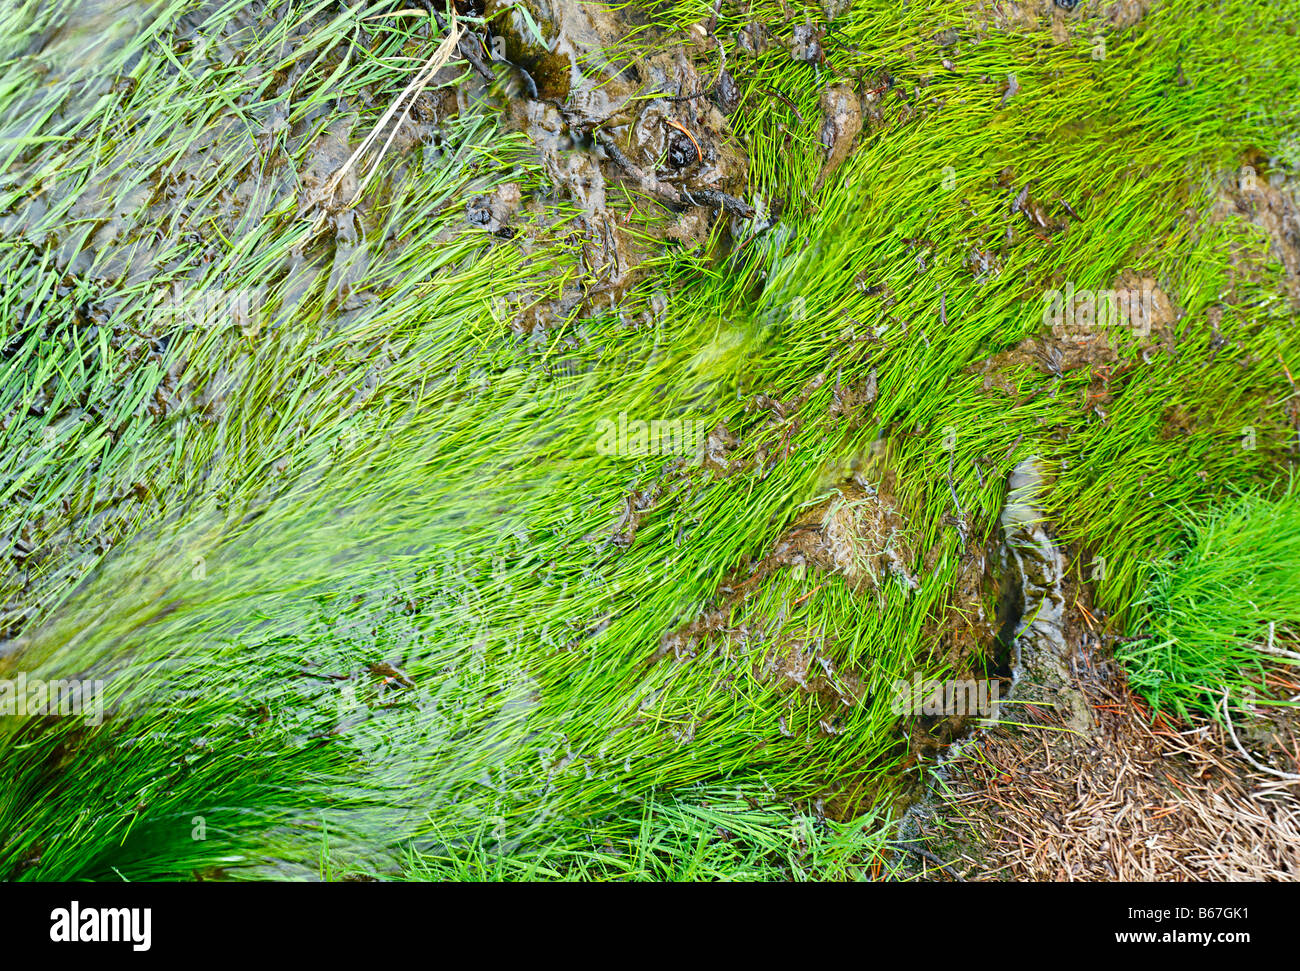 Closeup of geyser Runoff with bright green grass - Stock Image